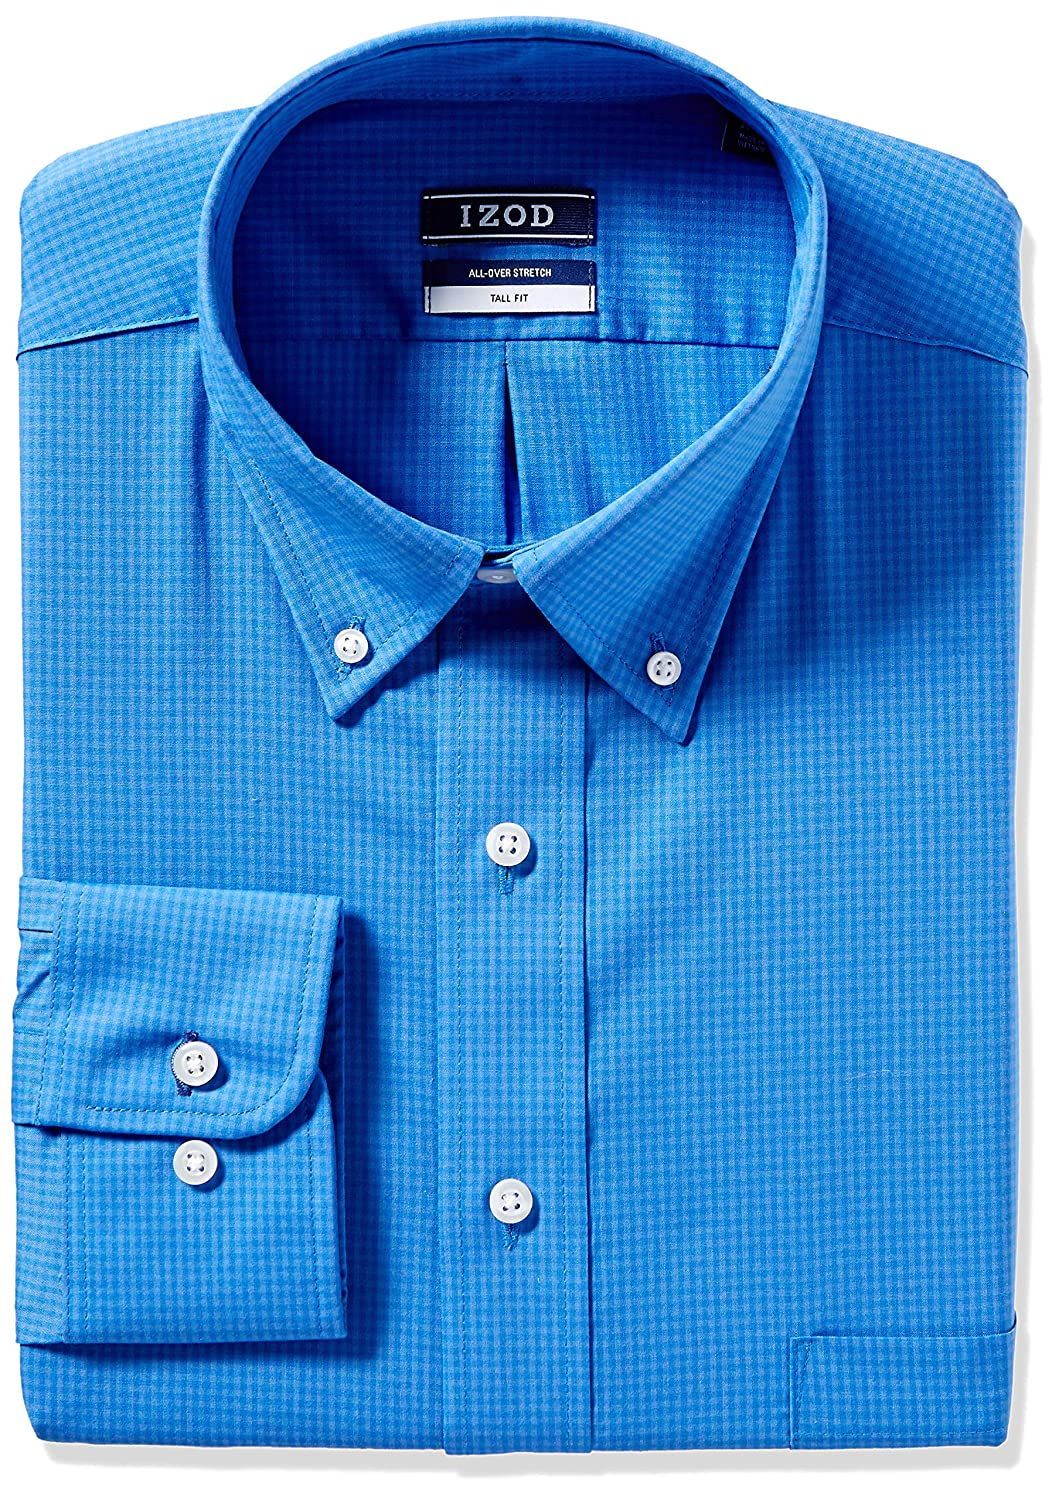 Big and Tall Izod Men/'s TALL FIT Dress Shirts Stretch Check